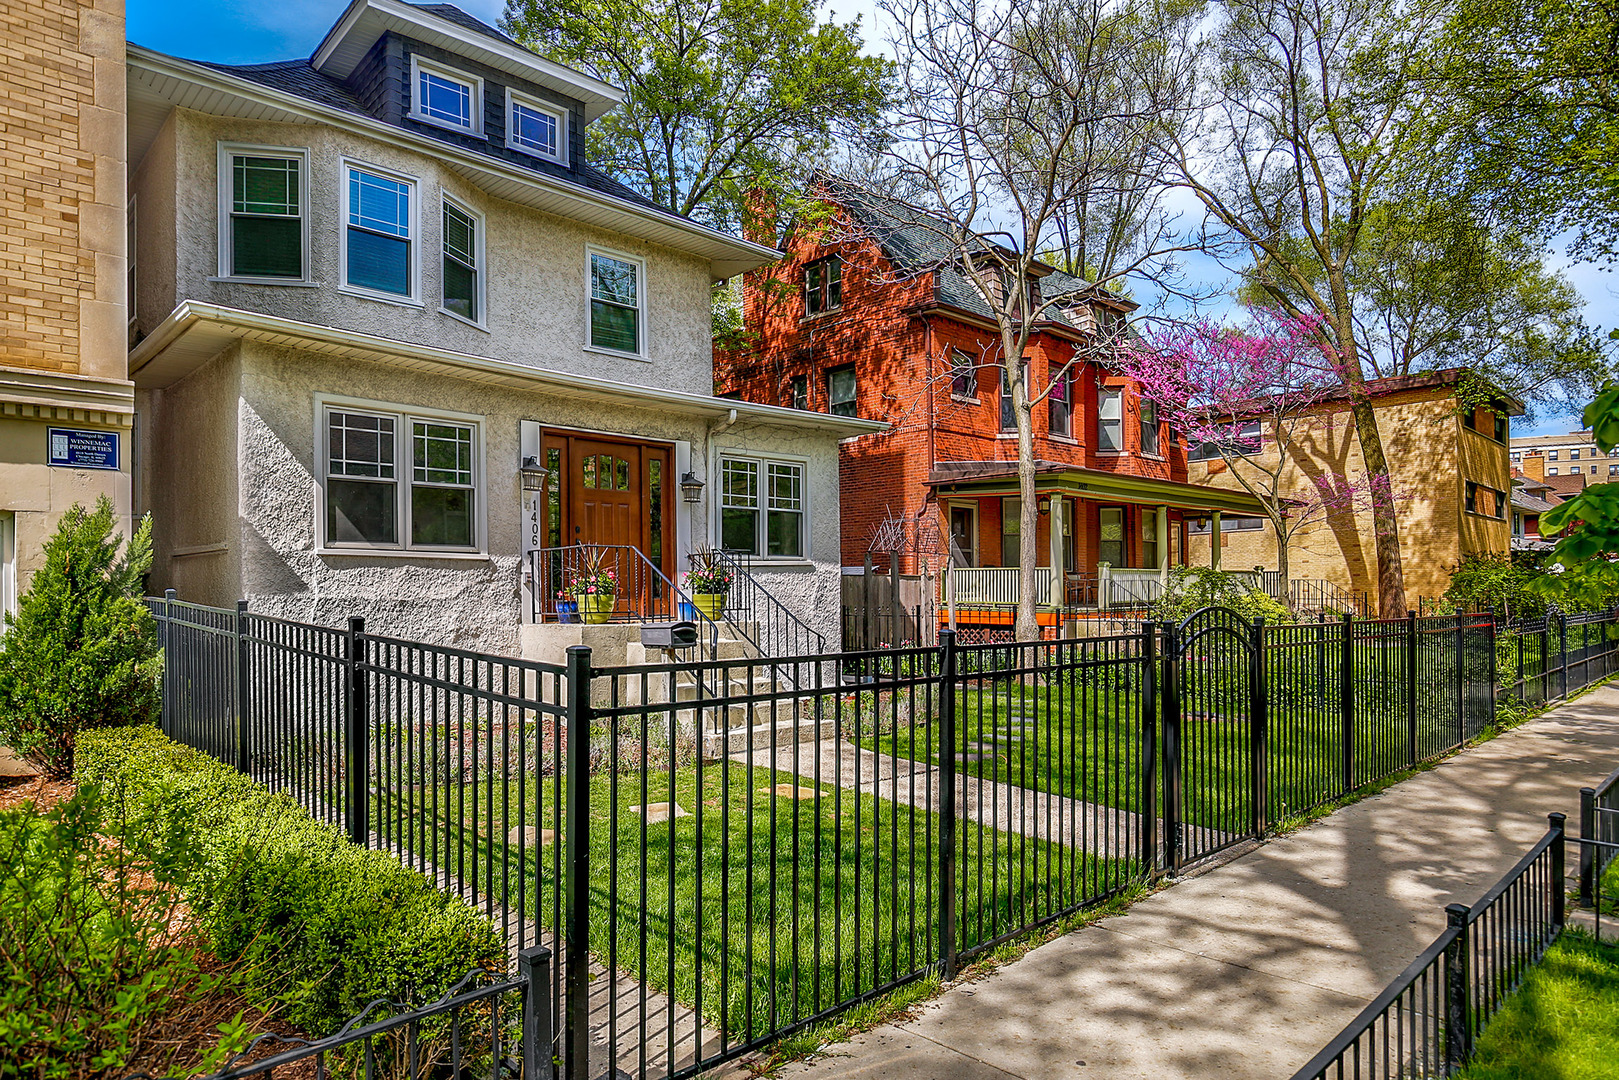 5 House in Rogers Park